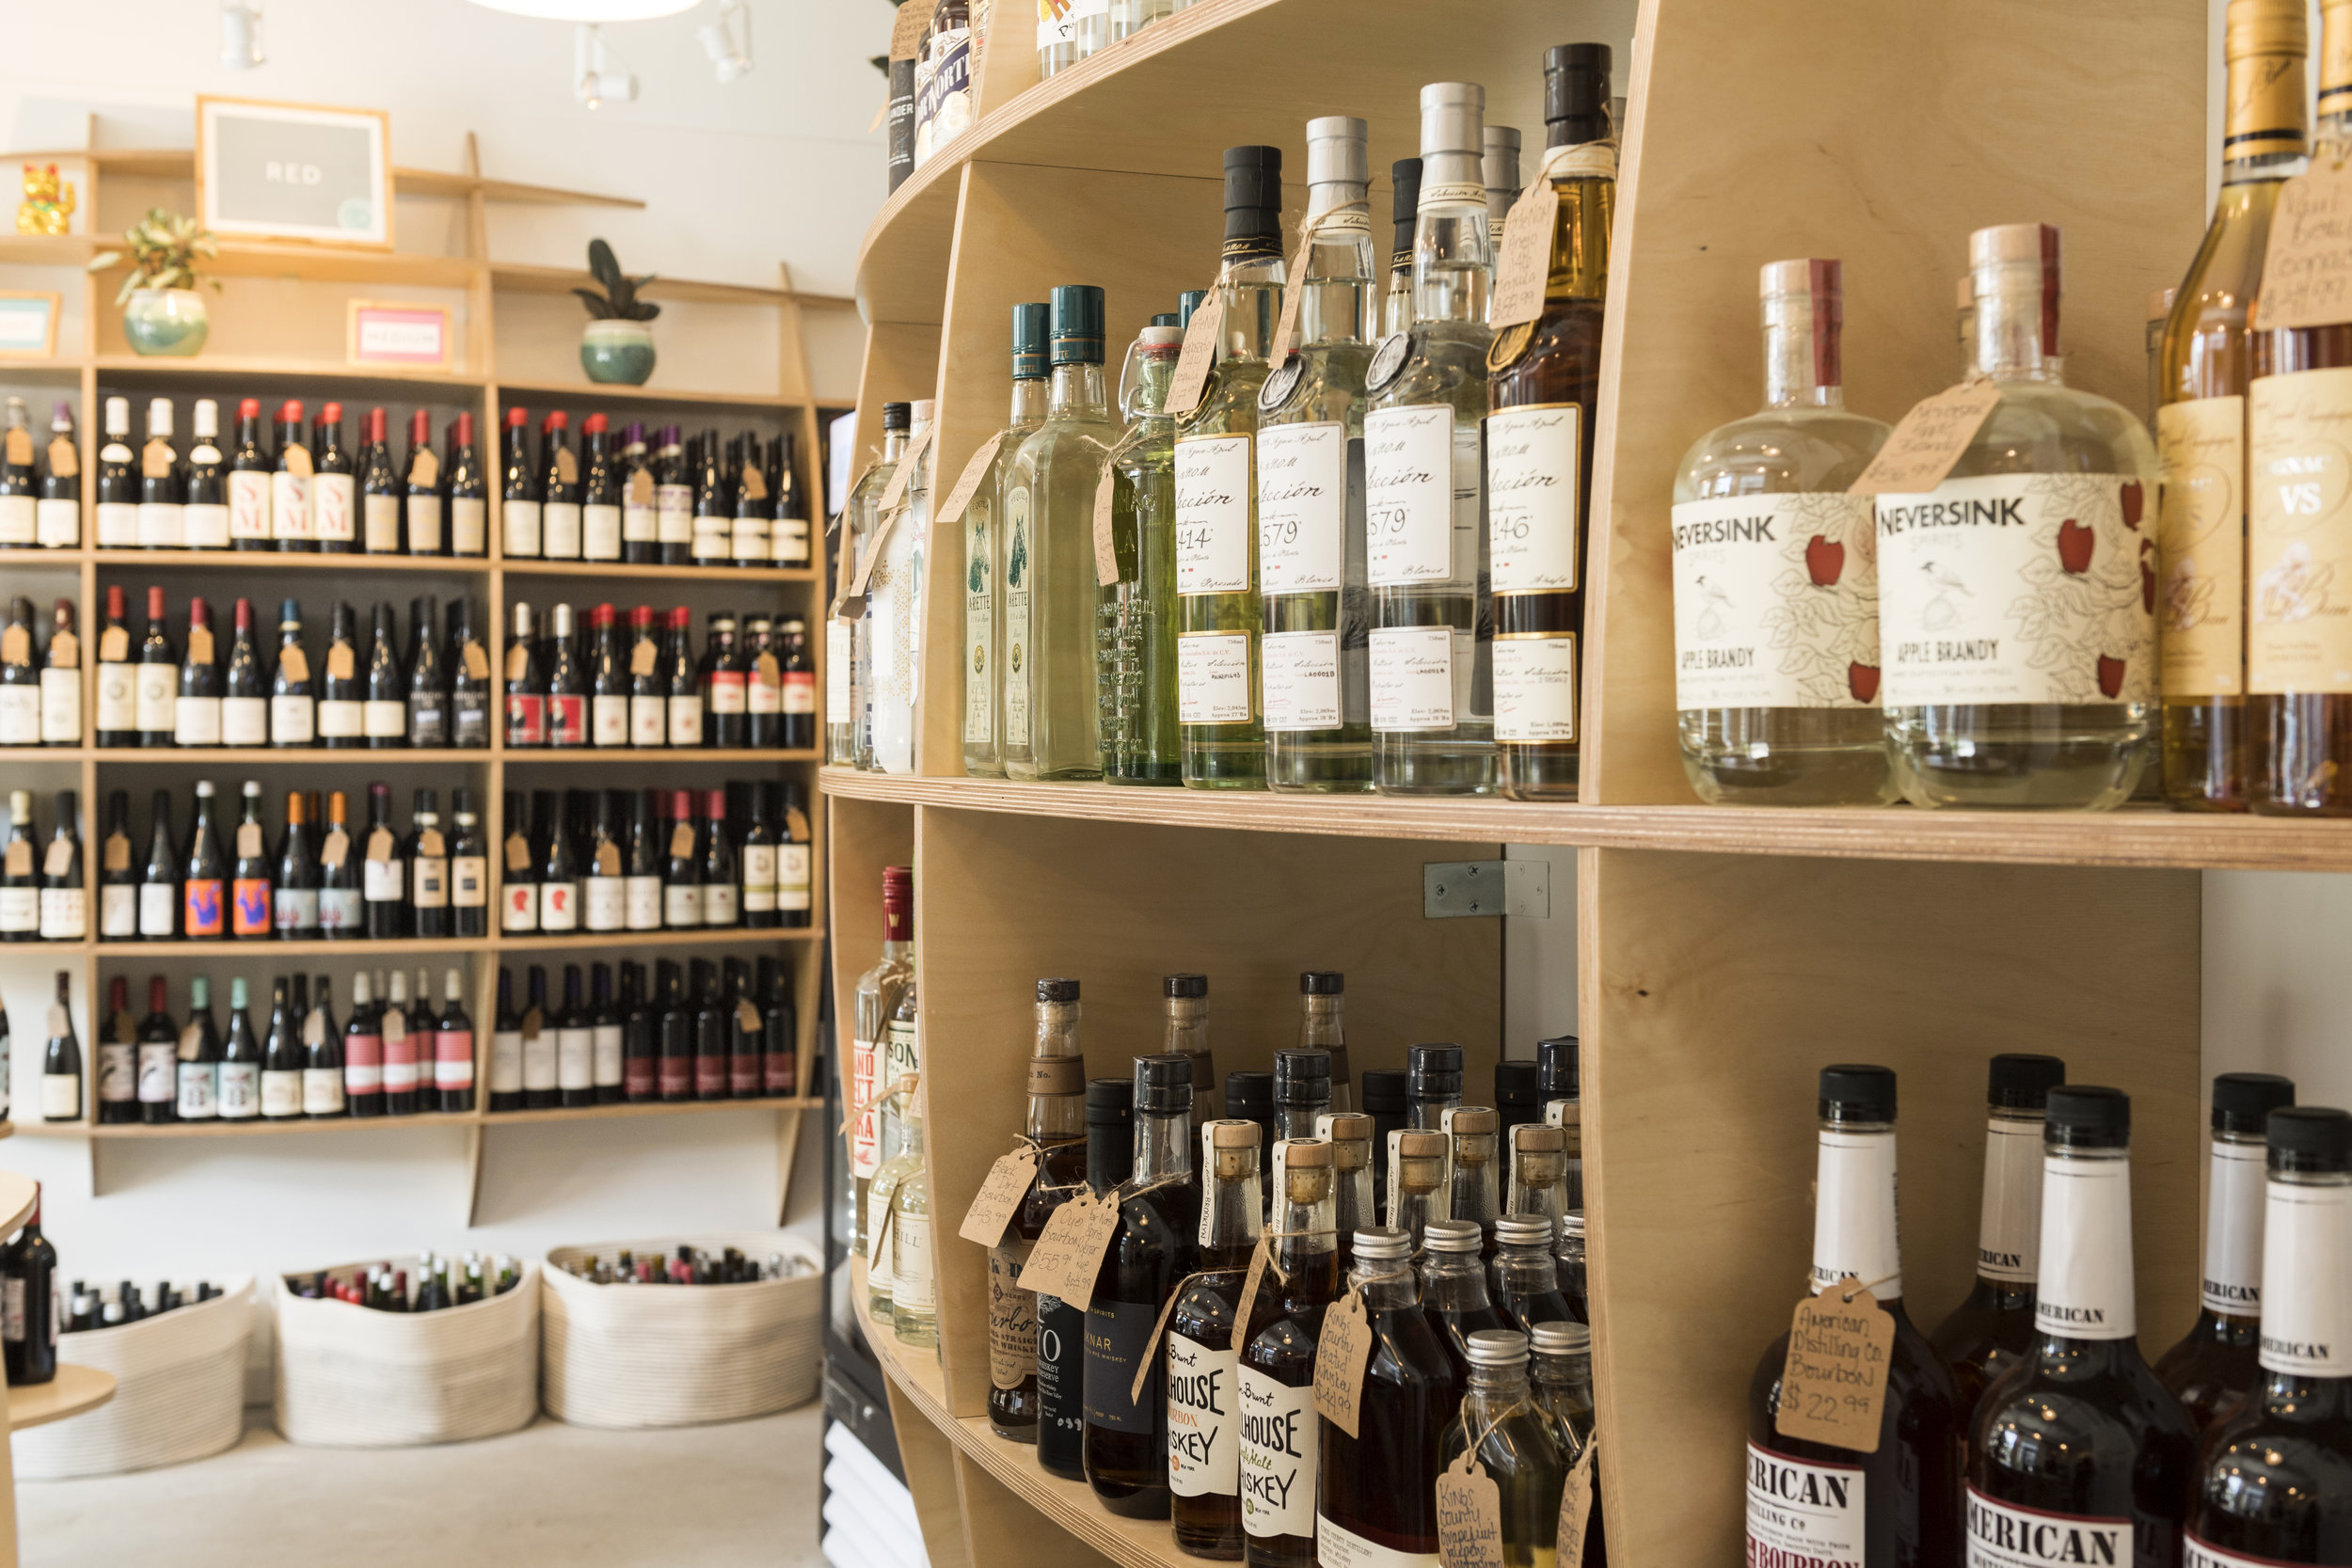 Store shelves. Spirits and wine.